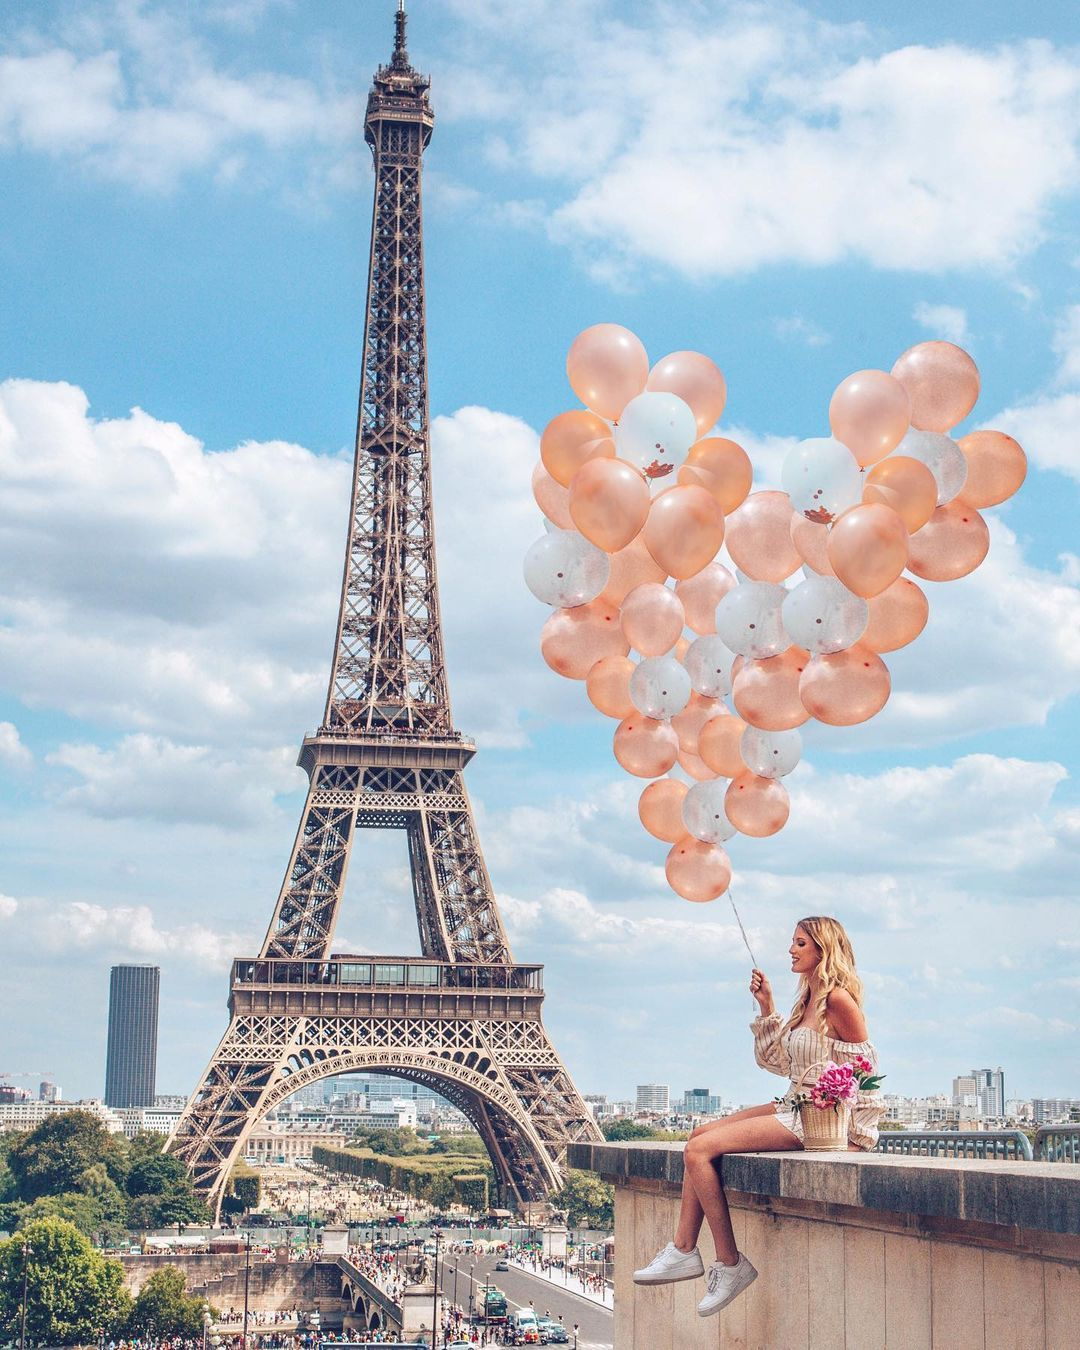 Margaux Leo S Instagram Photo Love Is In The Air Do You Like More 1 Or 2 Paris Parisphoto Pari In 2021 Paris Photography Eiffel Tower Eiffel Tower Photography